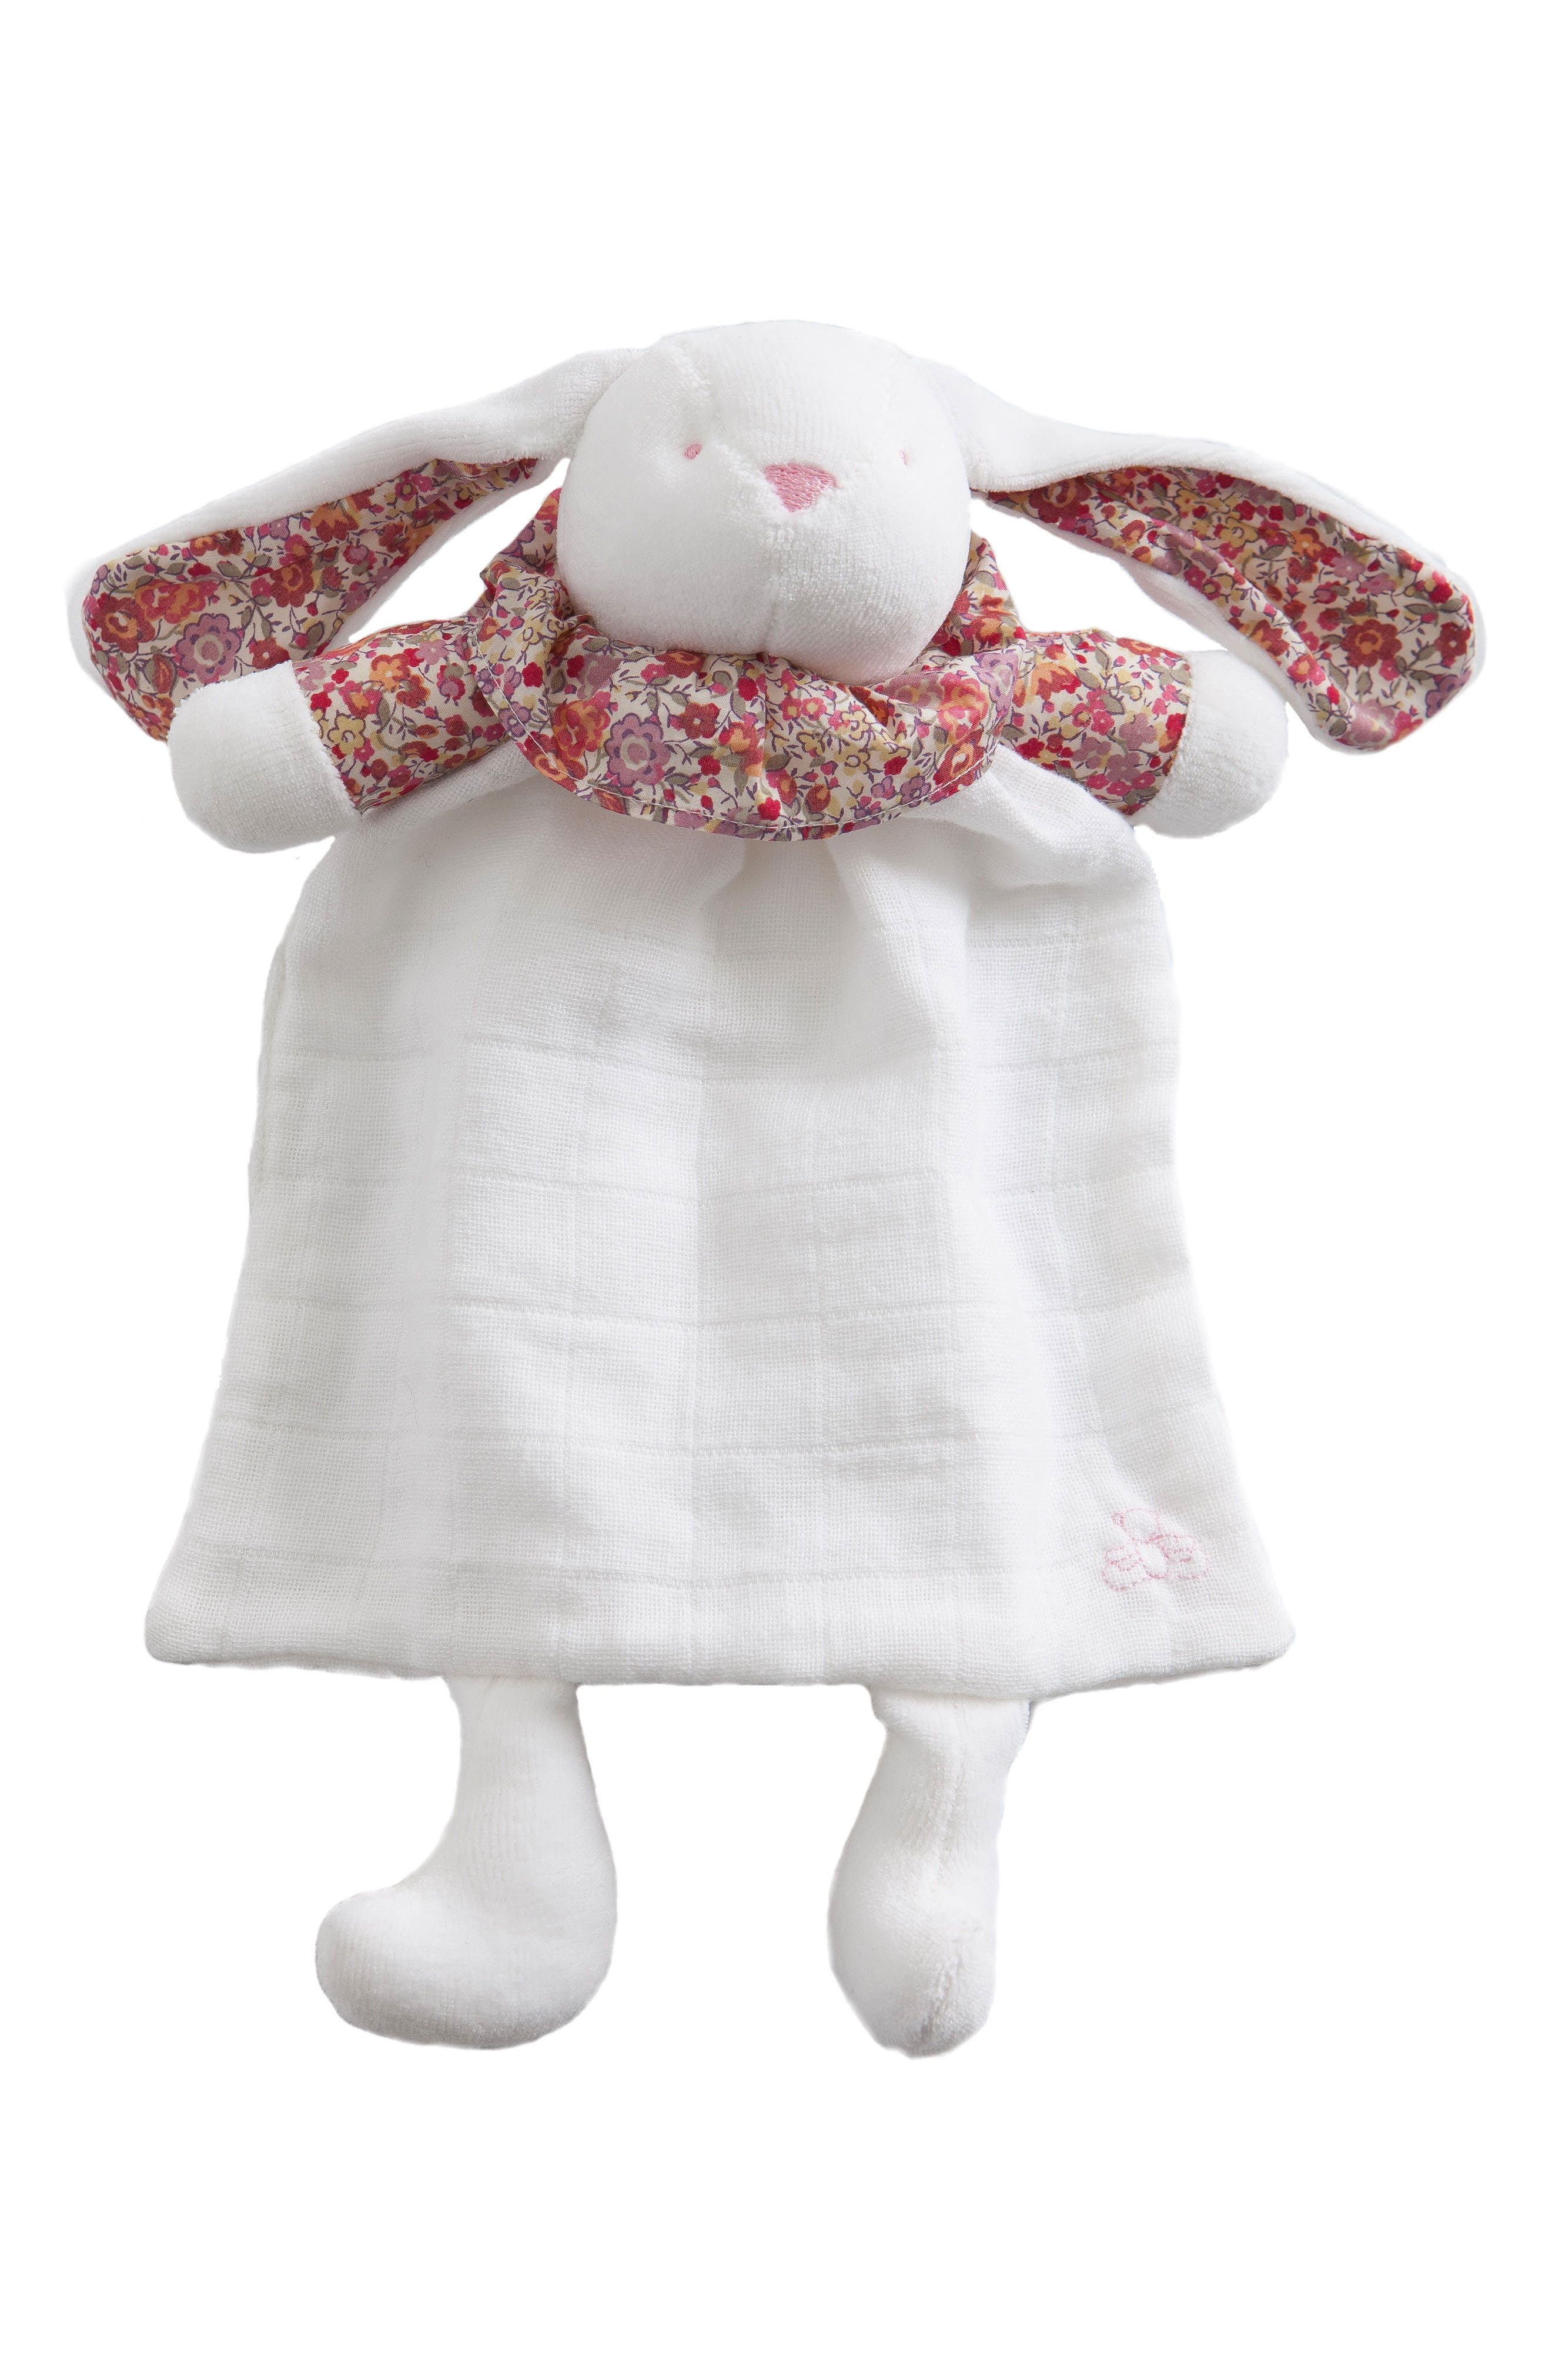 Main Image - Pamplemousse Peluches x Liberty of London Rabbit Lovey Toy